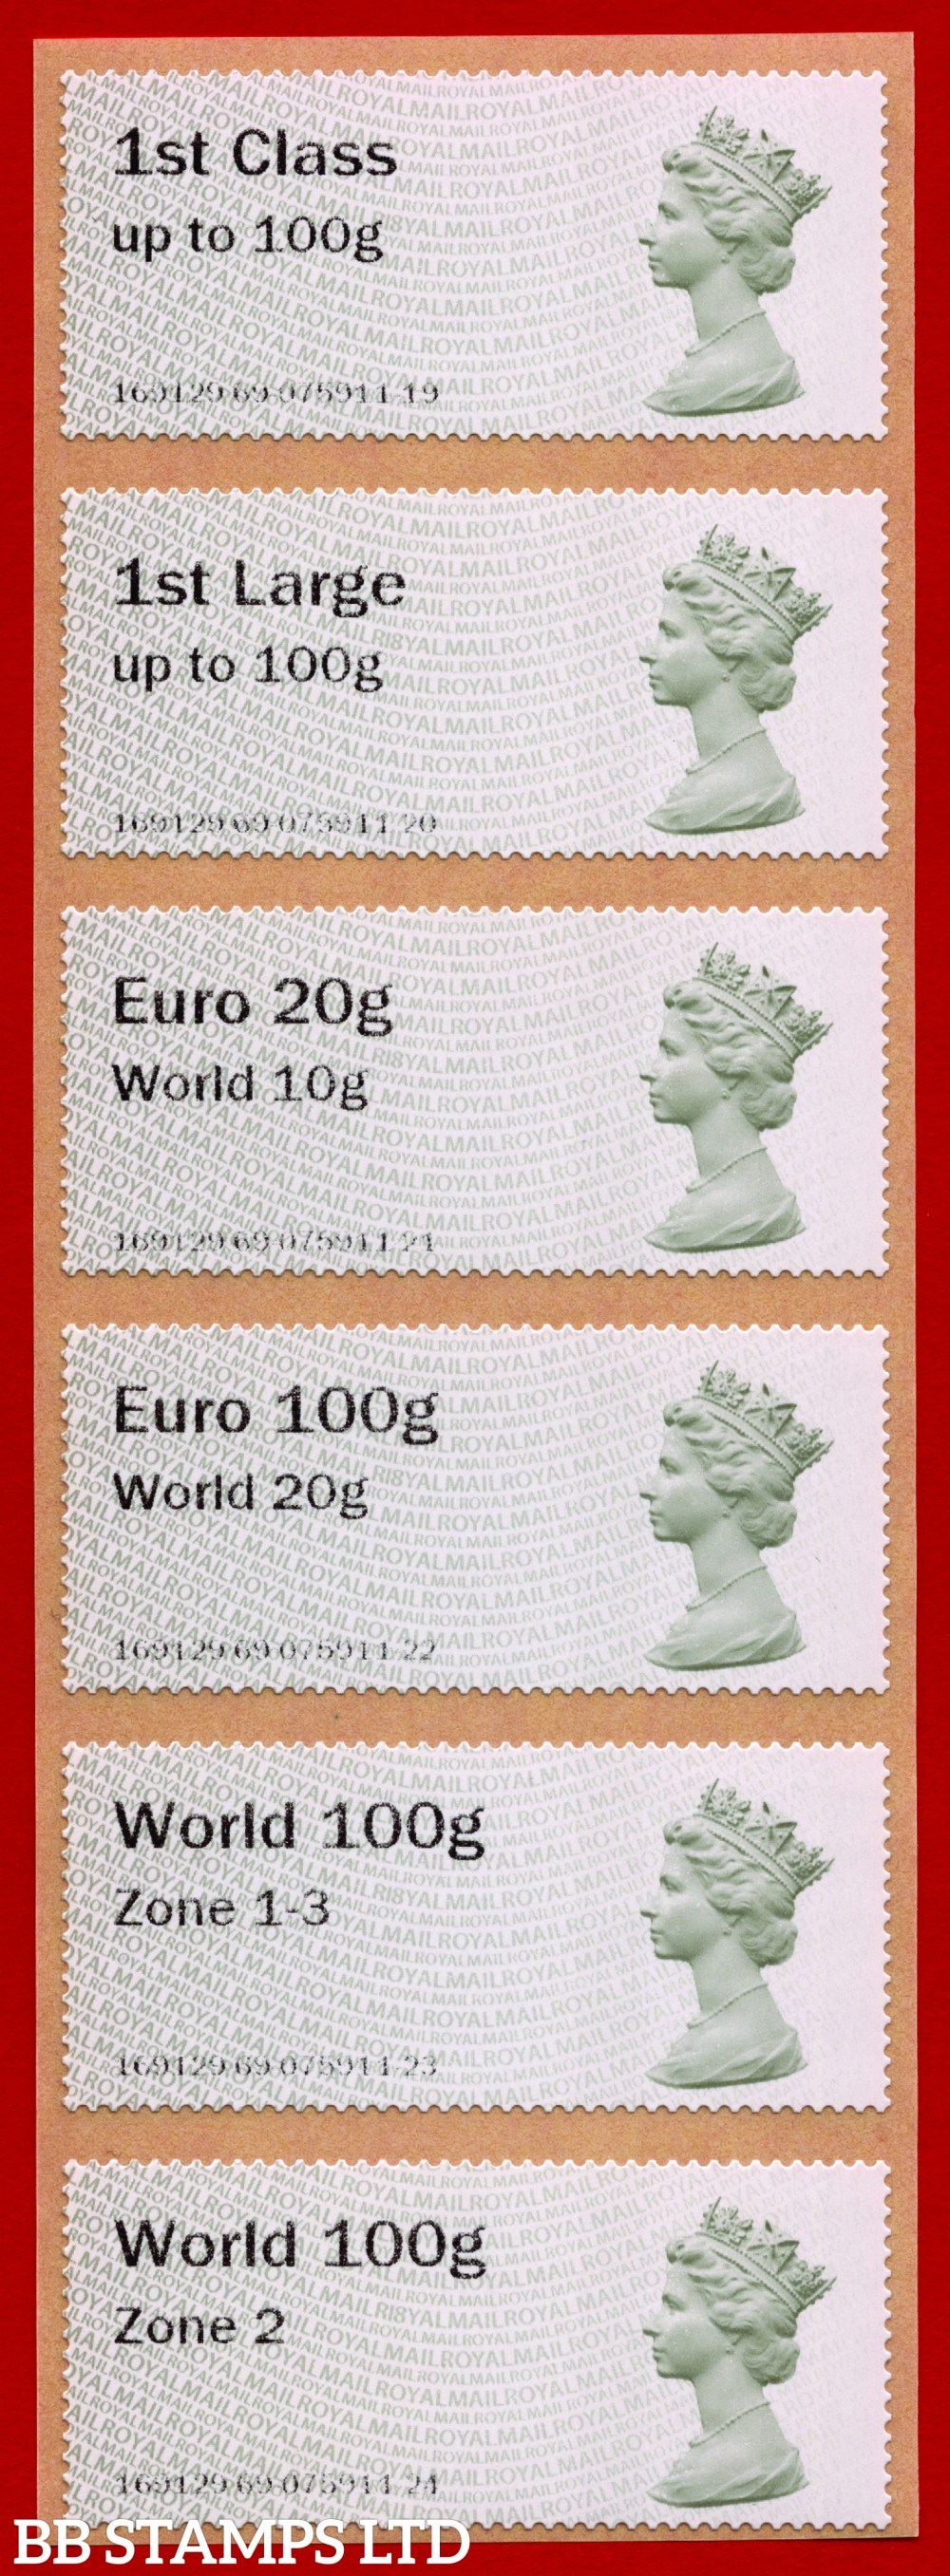 Machin (TIIA), set of 6 with 01/09/20 new overseas stamps: 1st/1stL/Euro 20g World 10g, and 3 new values: Euro 100g World 20g, World 100g Zone 1-3 and World Zone 2: with R18Y year code (BK30 P11)